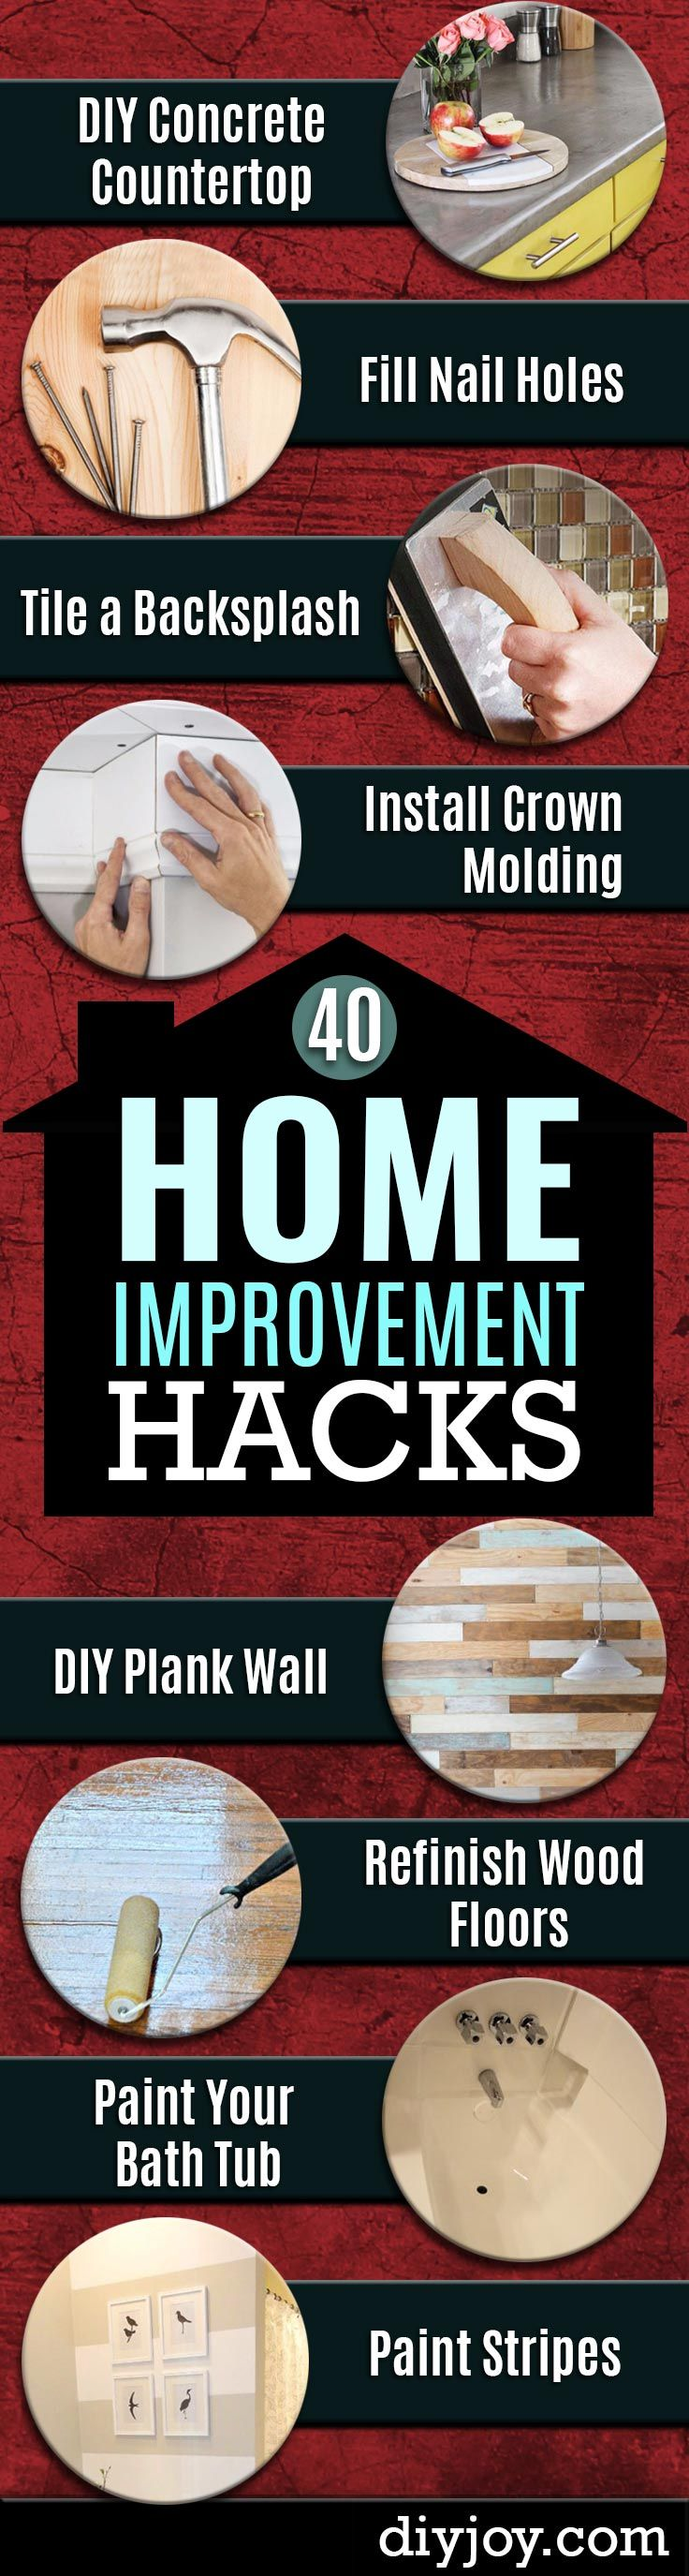 41 Clever Home Improvement Hacks | For the Home | Pinterest | Garage ...